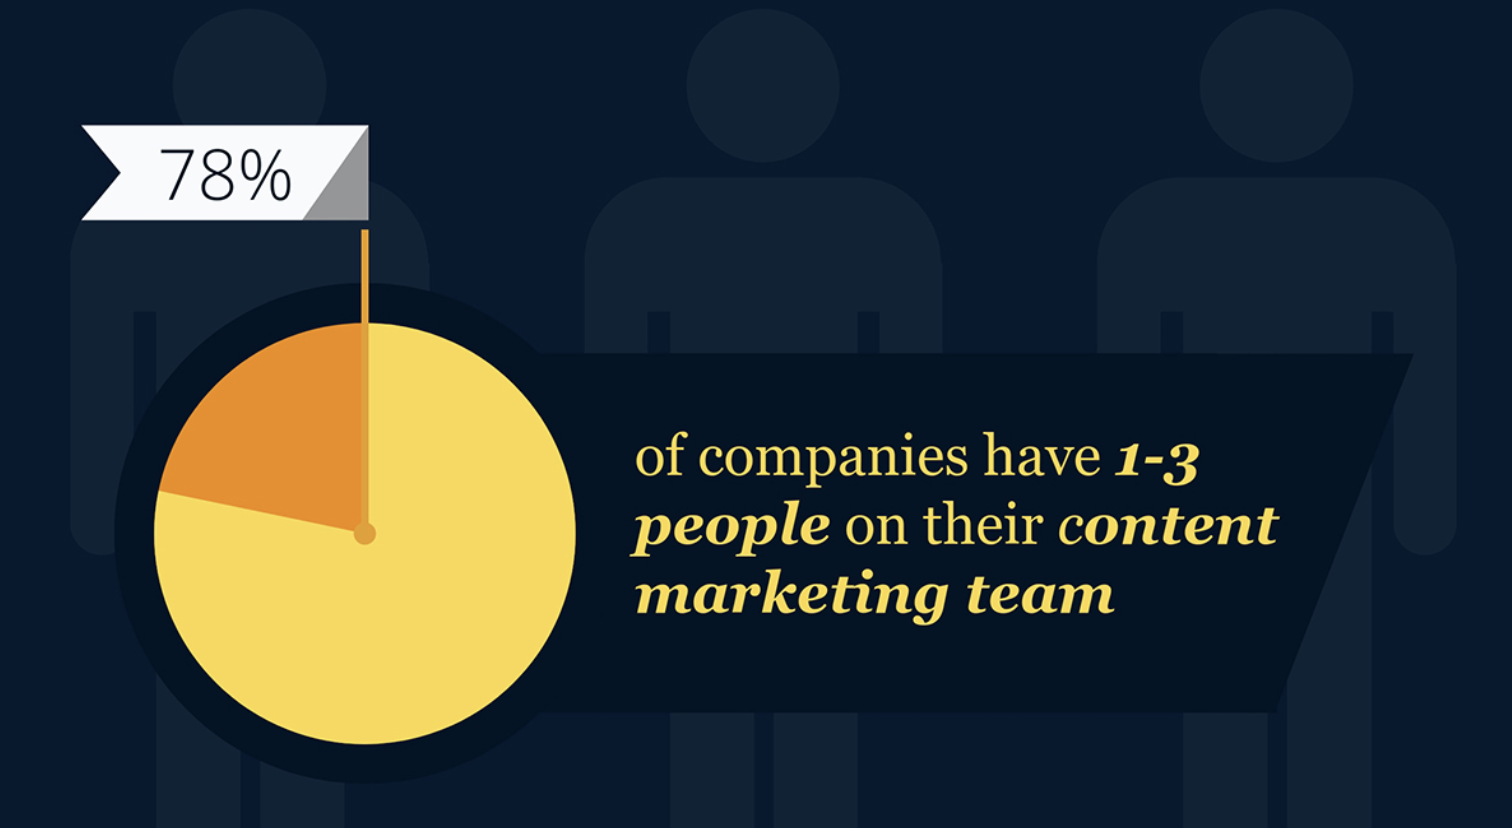 78% of companies have 1-3 people on their content marketing team